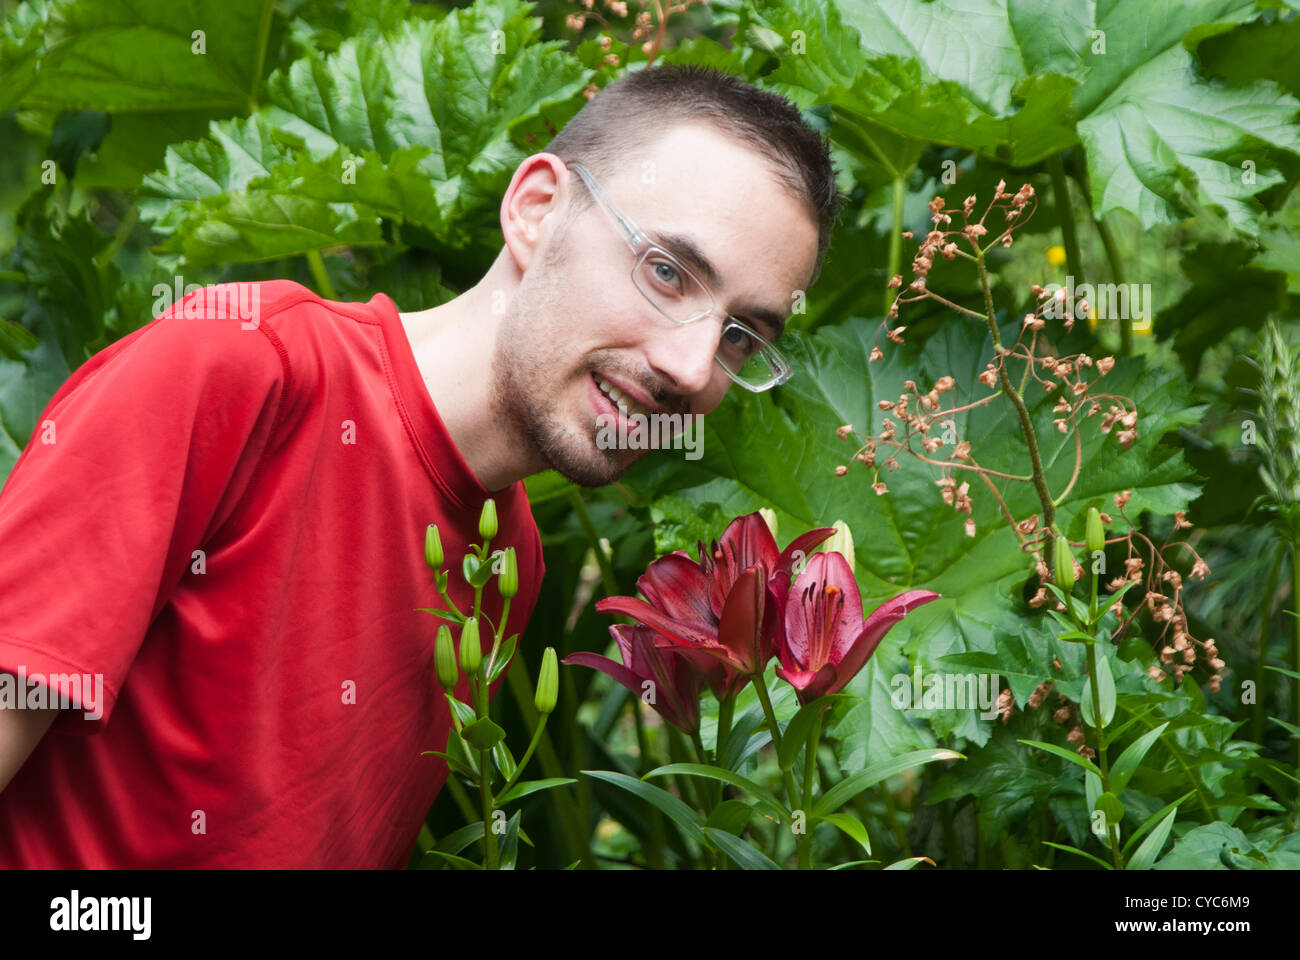 Man in a garden bending over to smell lily and looking at camera - Stock Image